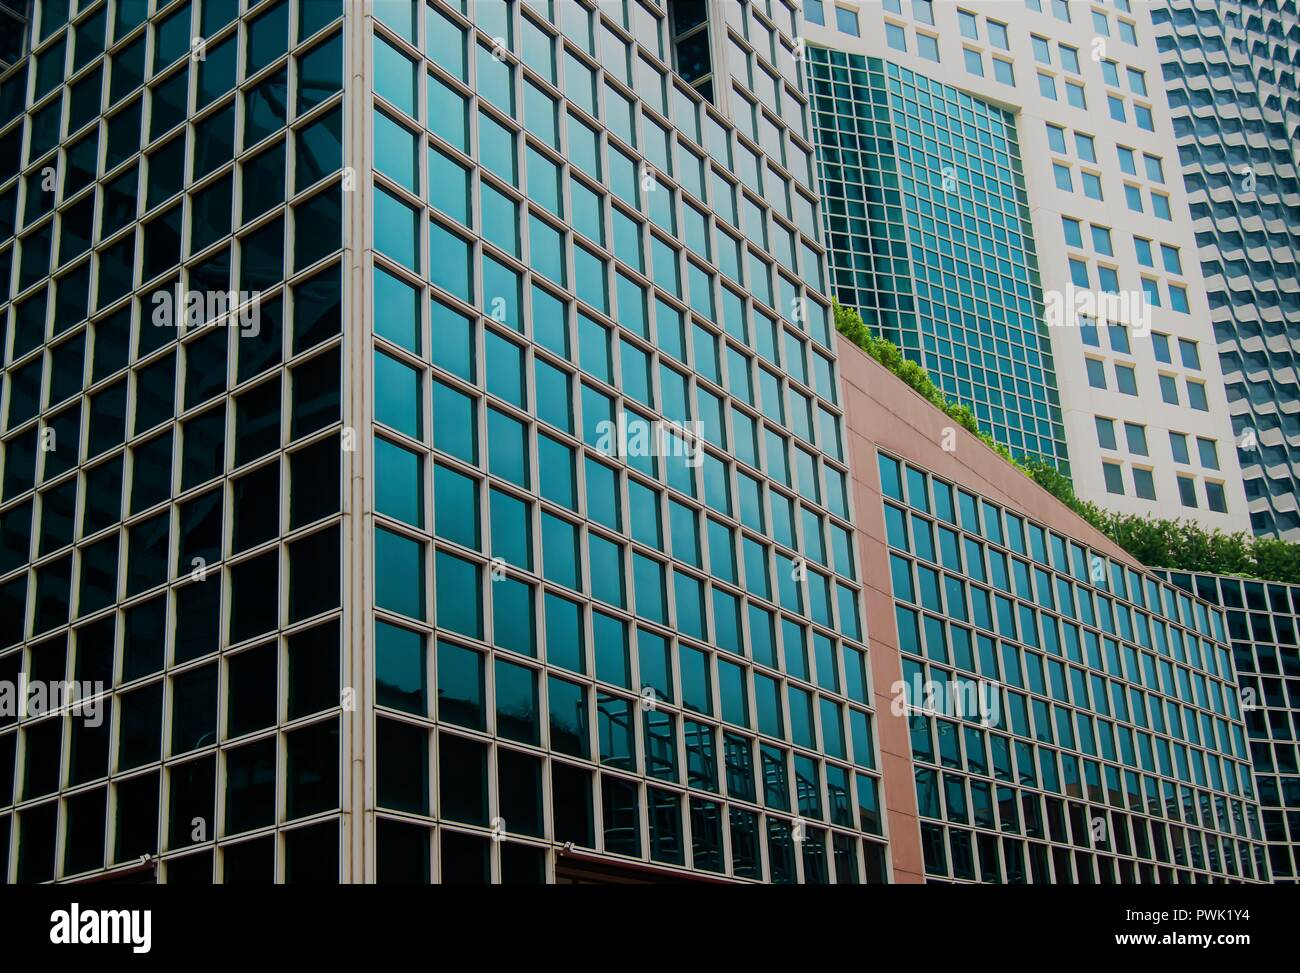 871cc7777af Abstract glass exterior of modern office buildings in downtown Singapore  with symmetrical patterns